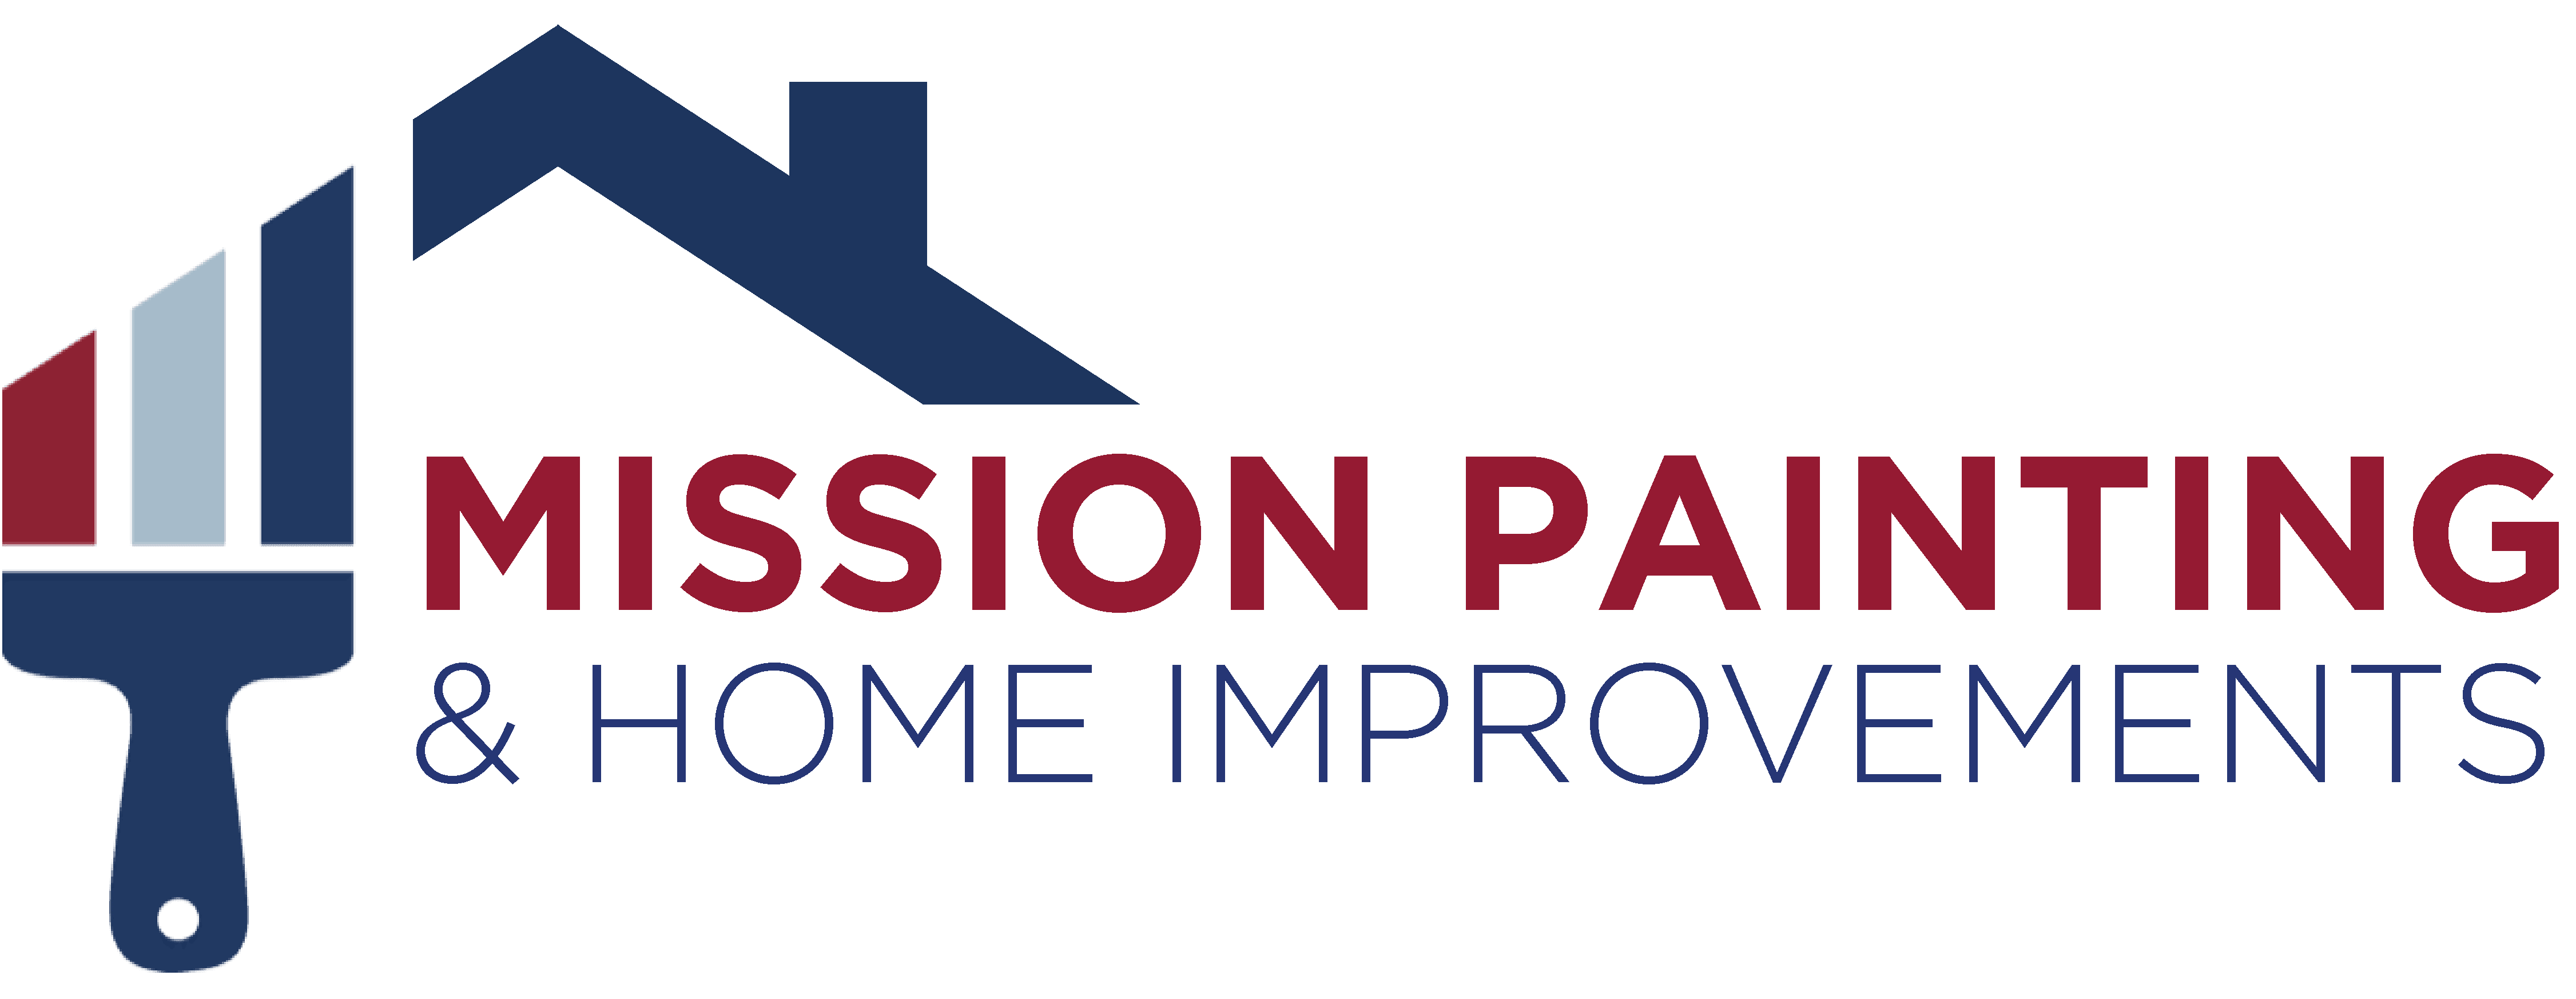 Mission Painting & Home Improvements